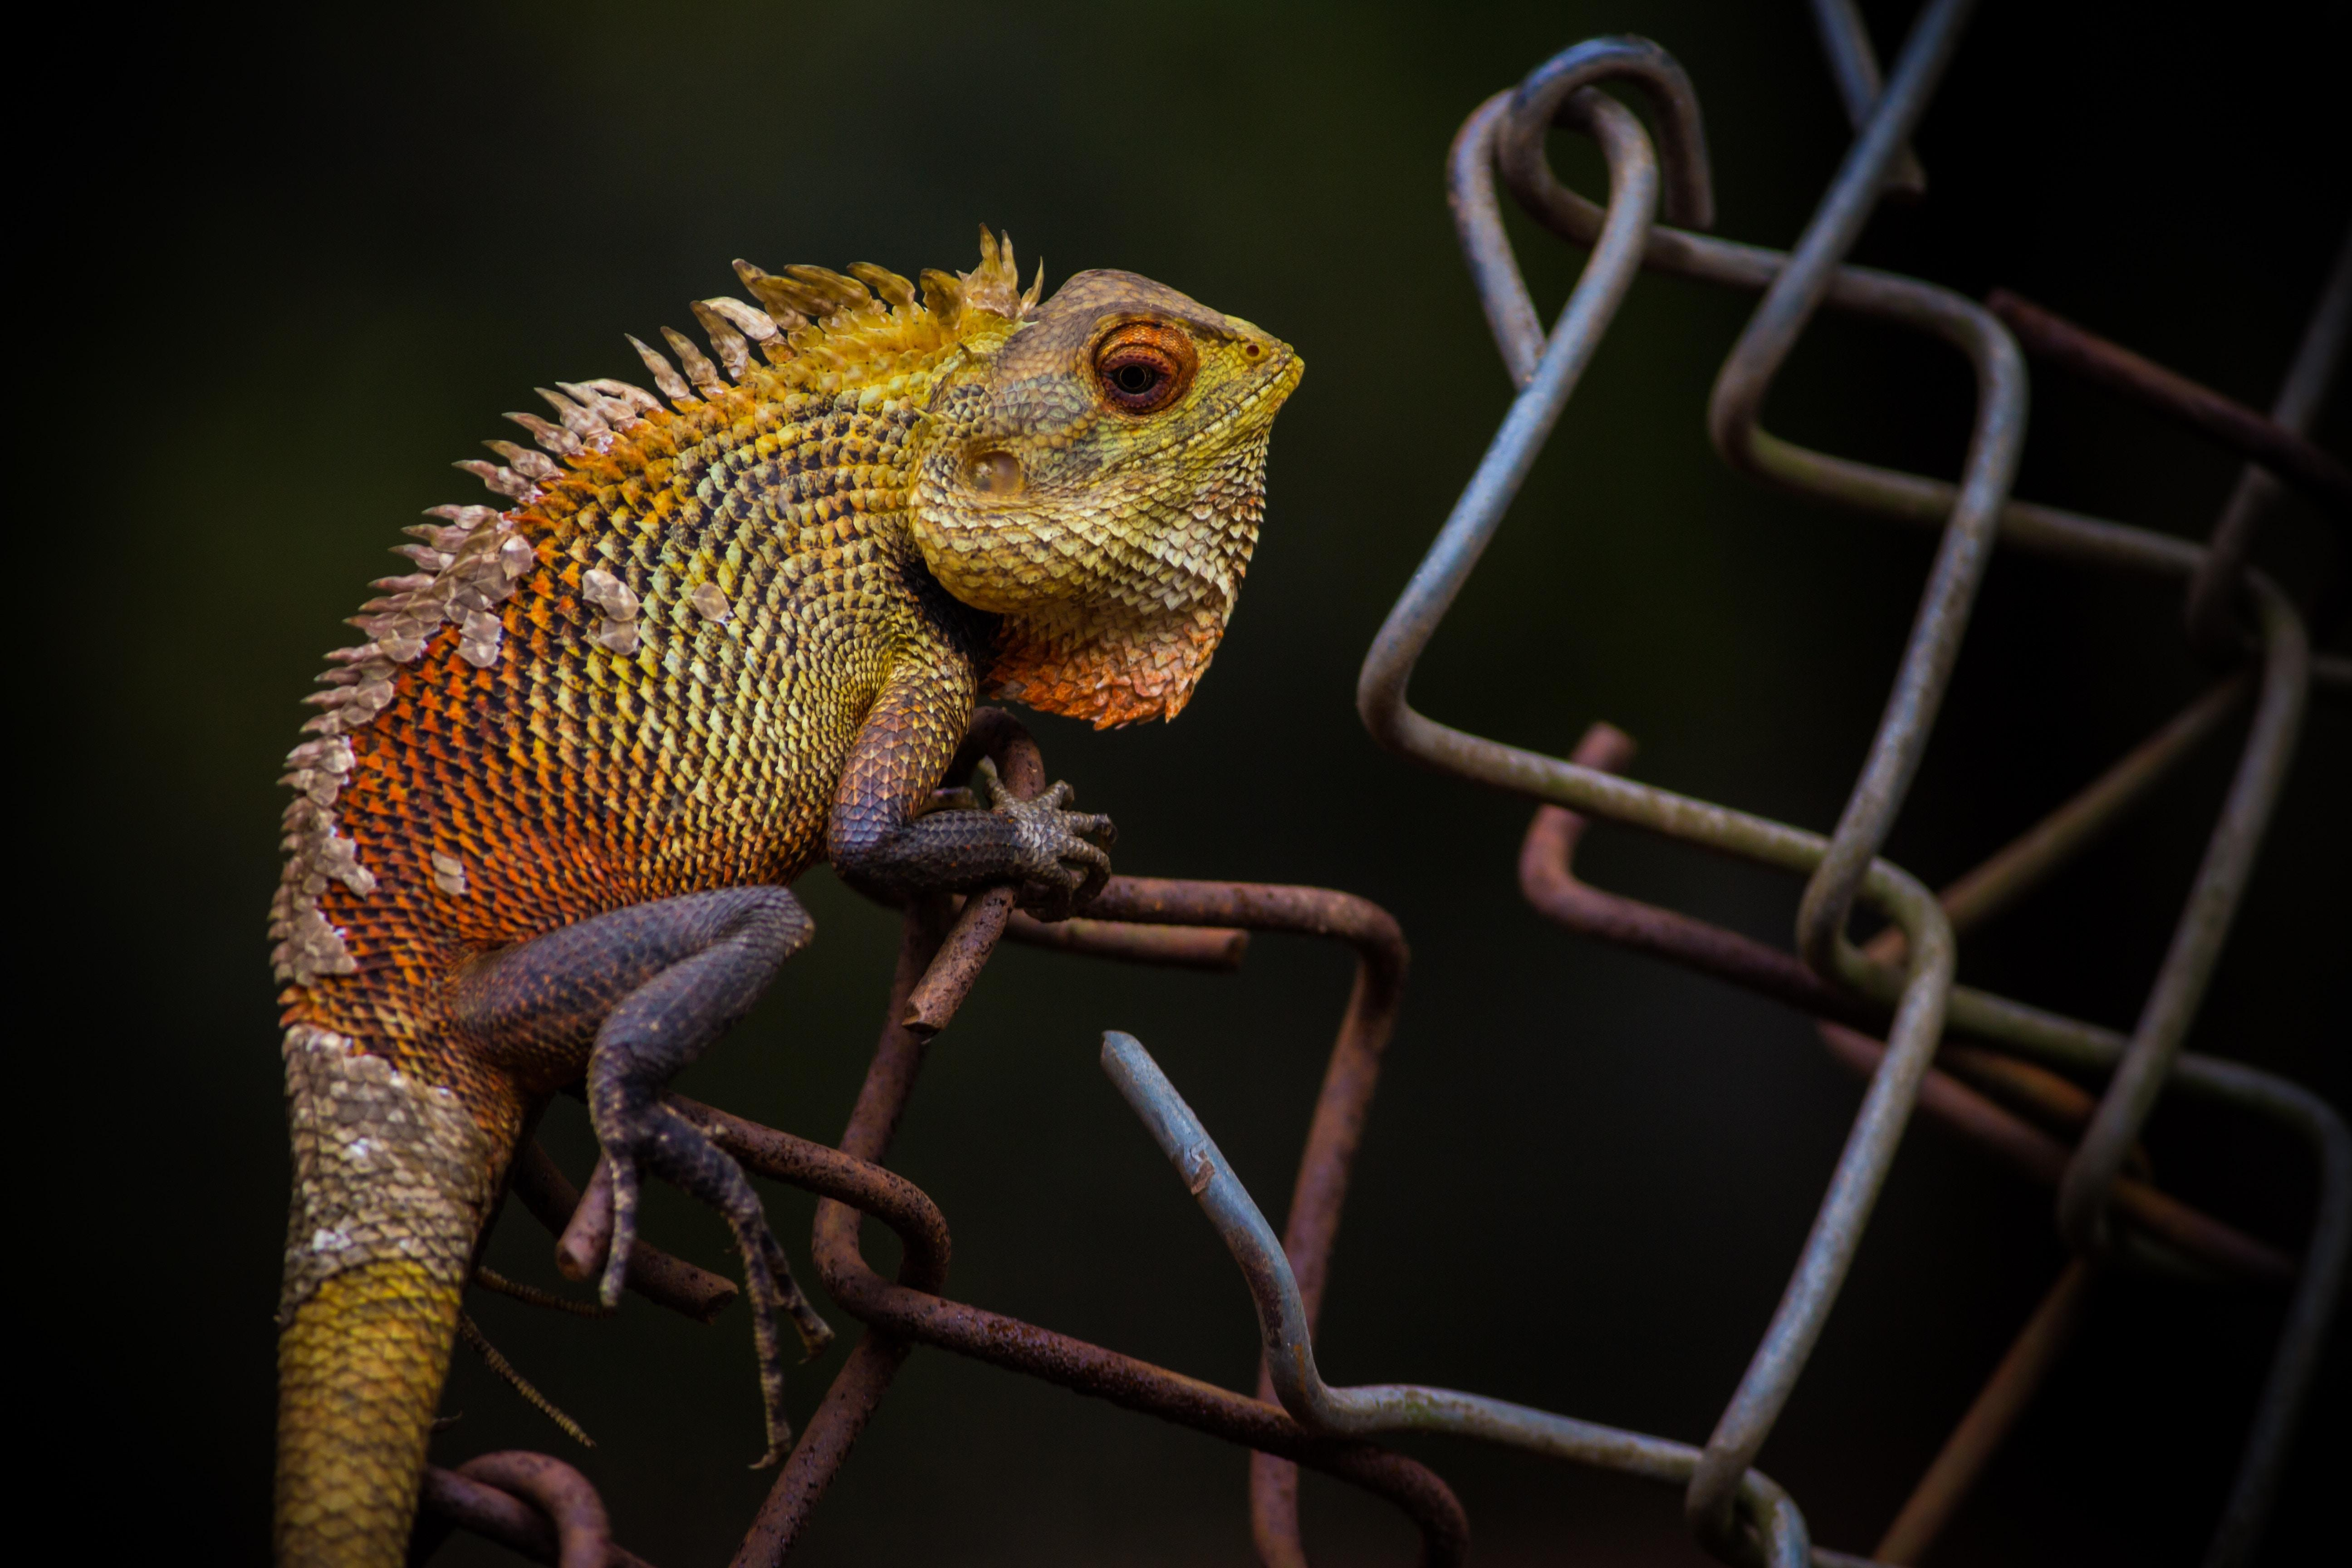 Student stereotypes: Lizard on wire